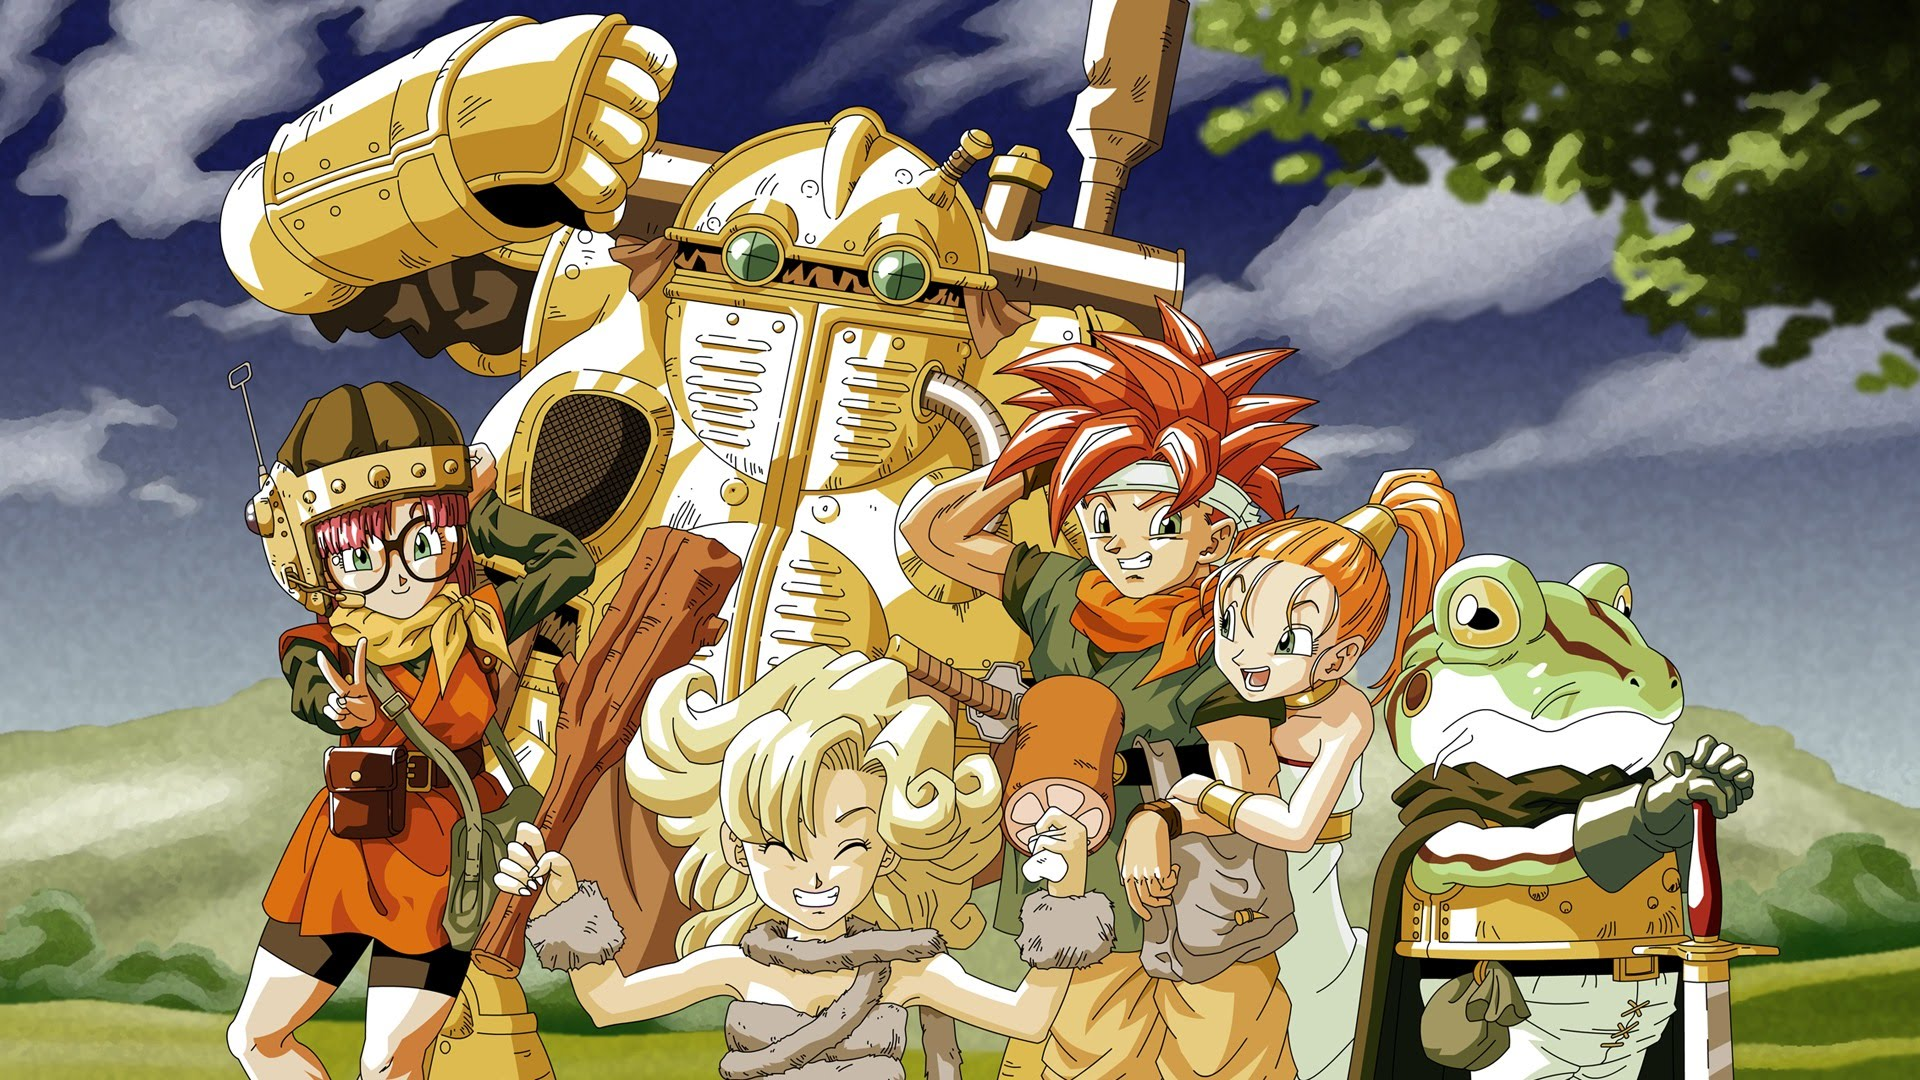 Chrono Trigger to get multiple Steam patches, original graphics coming this month